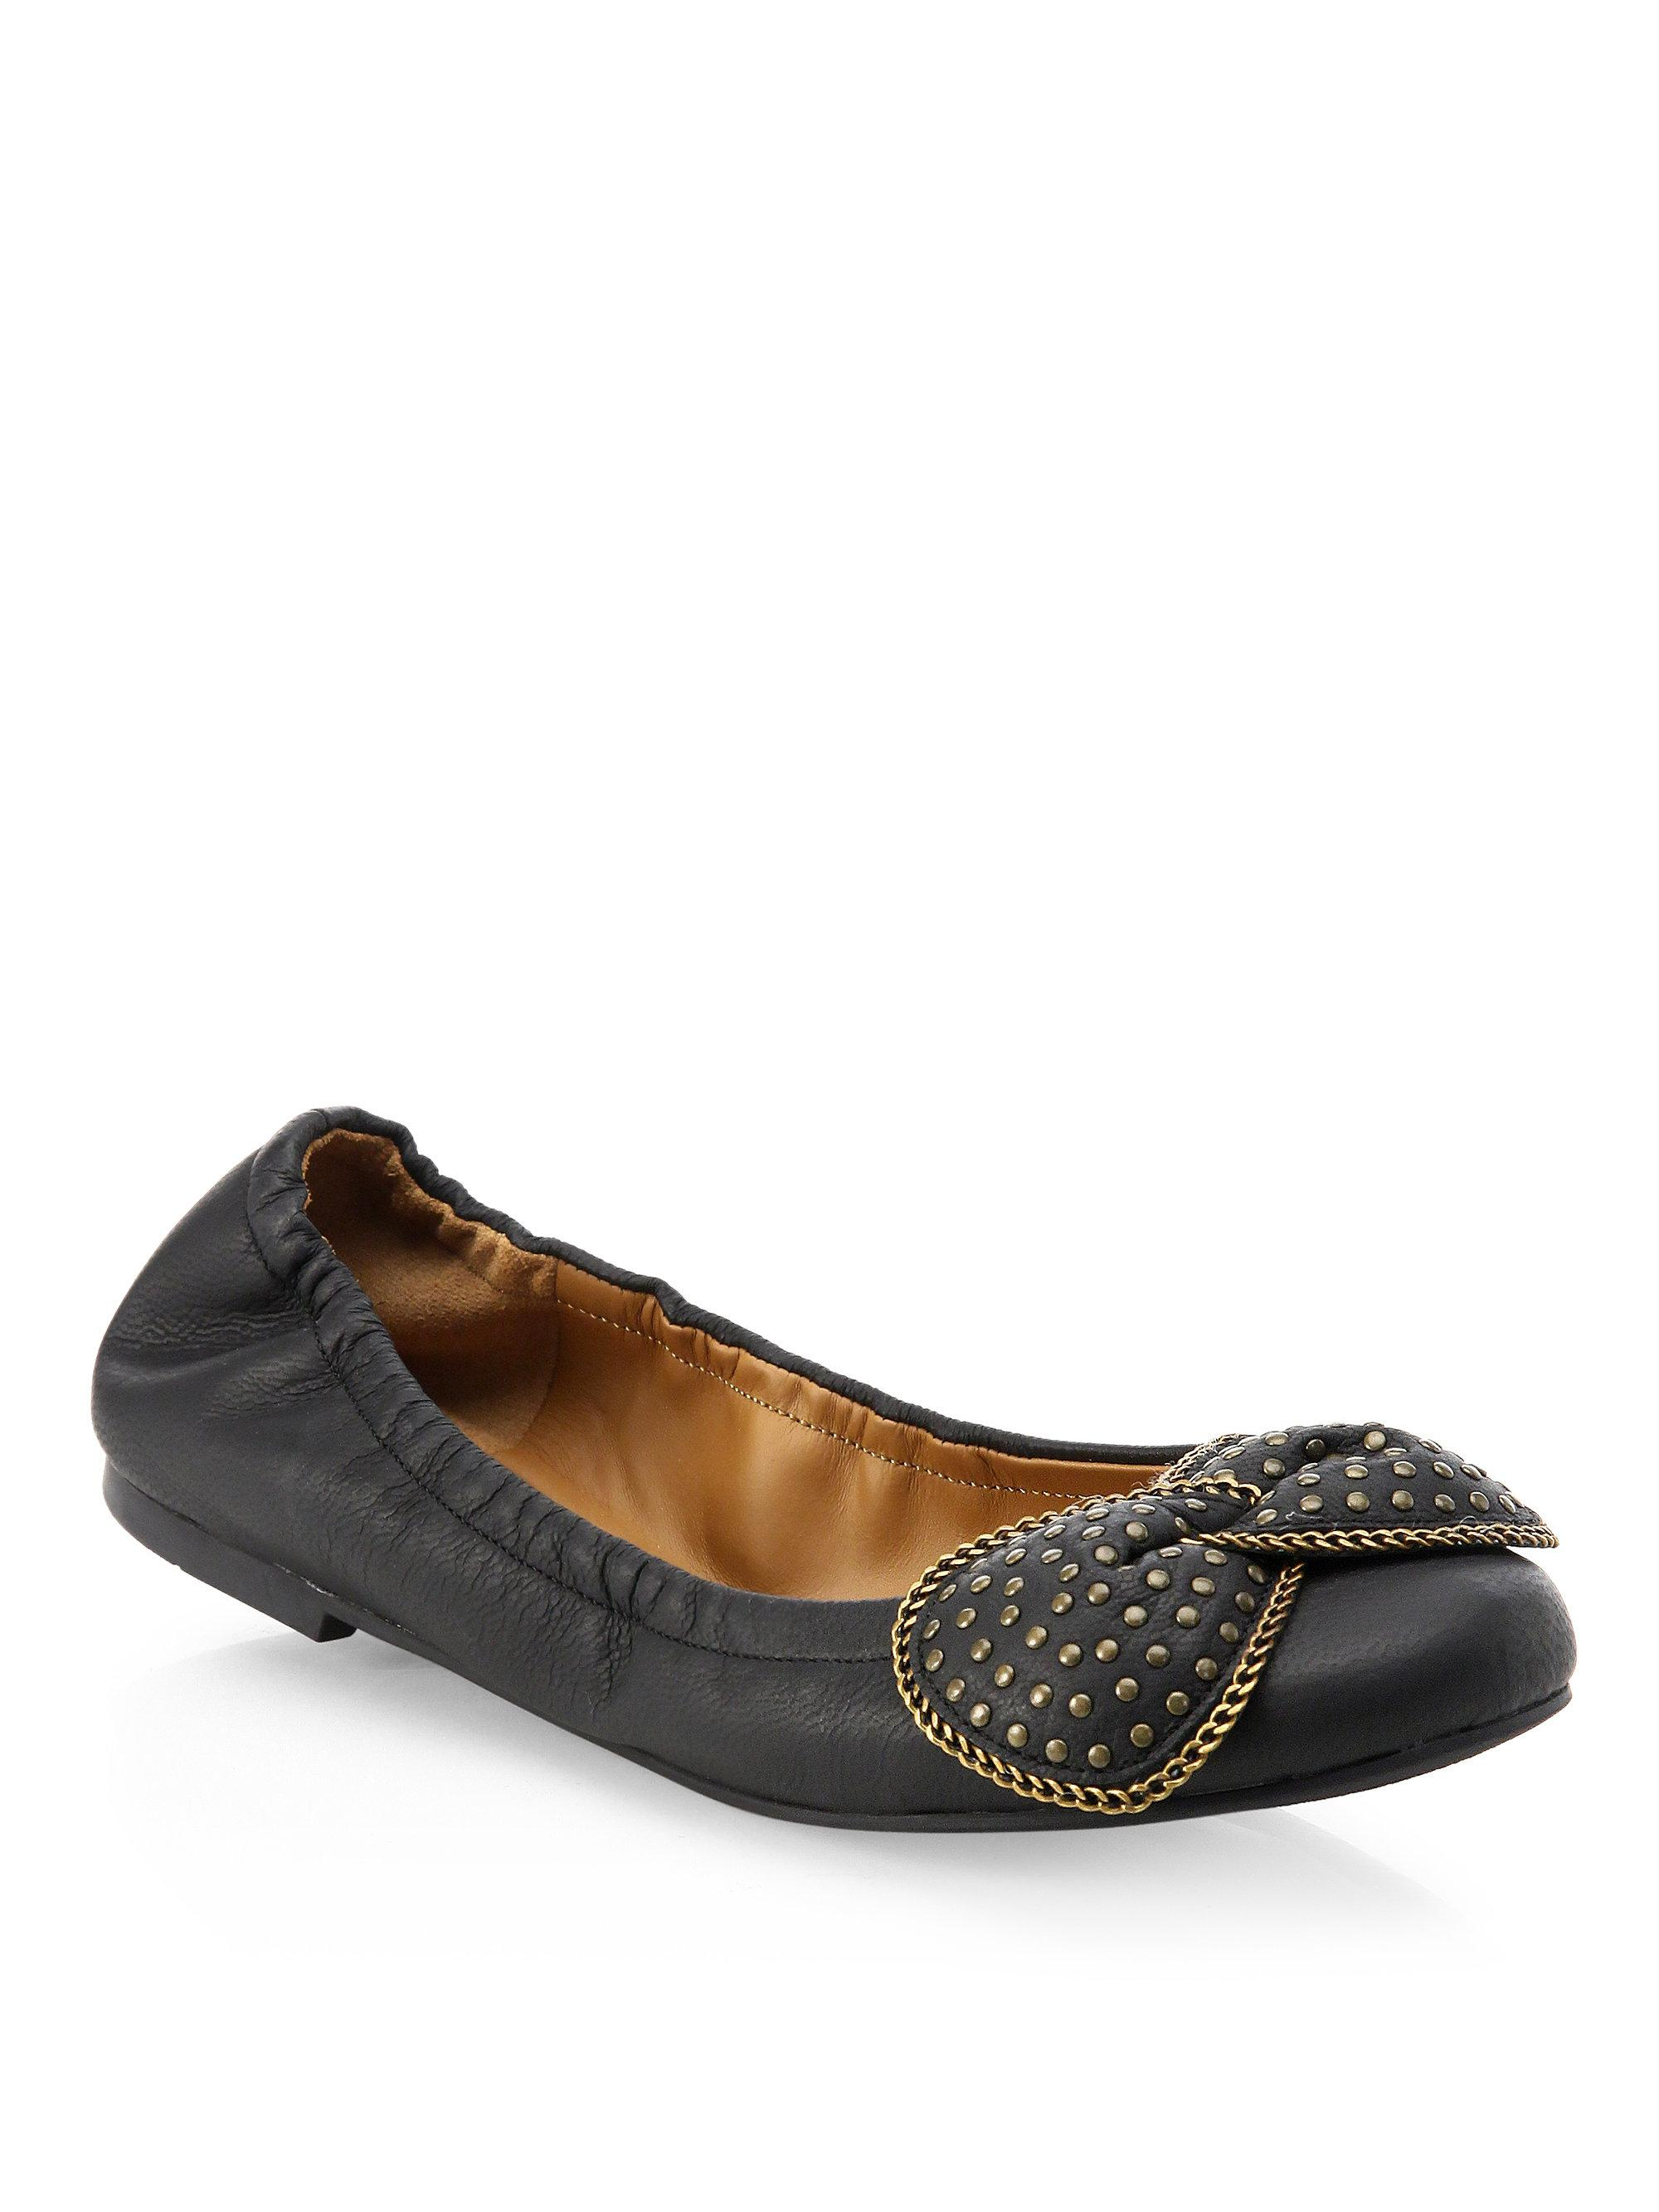 See By Chloé | Black Studded Leather Ballet Flats | Lyst. View Fullscreen